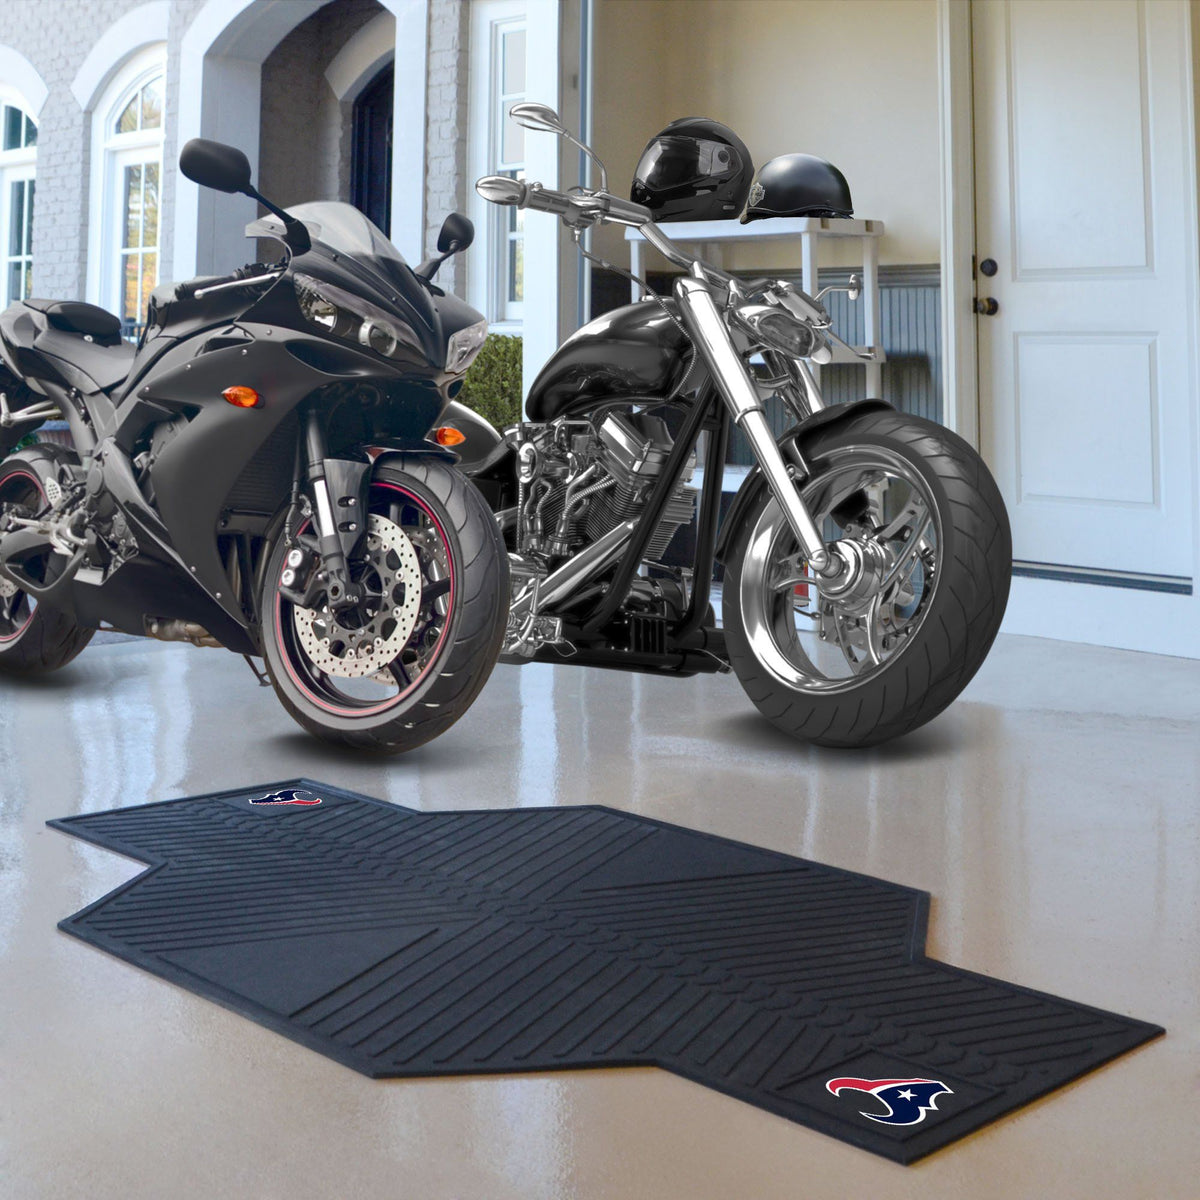 "NFL - Motorcycle Mat, 82.5"" x 42"" NFL Mats, Motorcycle Accessory, Motorcycle Mat, NFL, Auto Fan Mats Houston Texans"